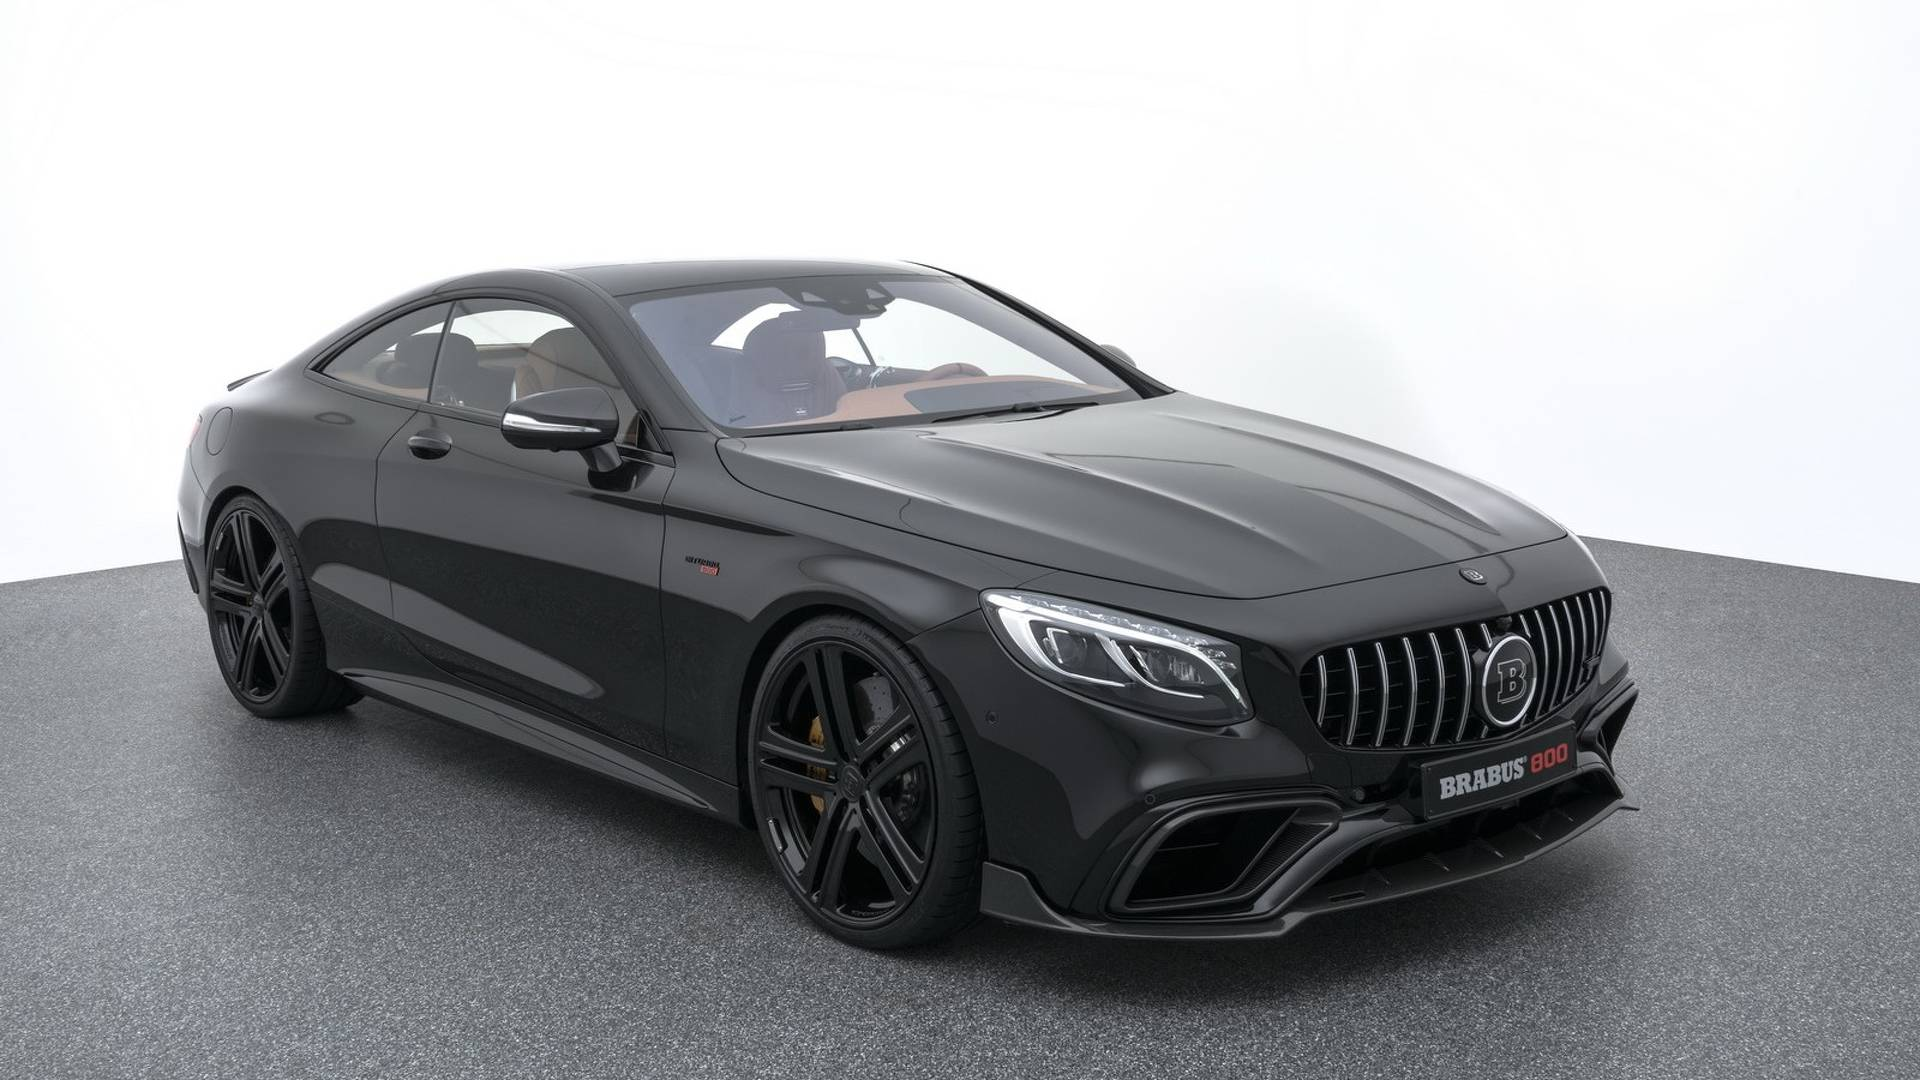 2018 Brabus 800 Coupe Based On The Mercedes Amg S63 Coupe